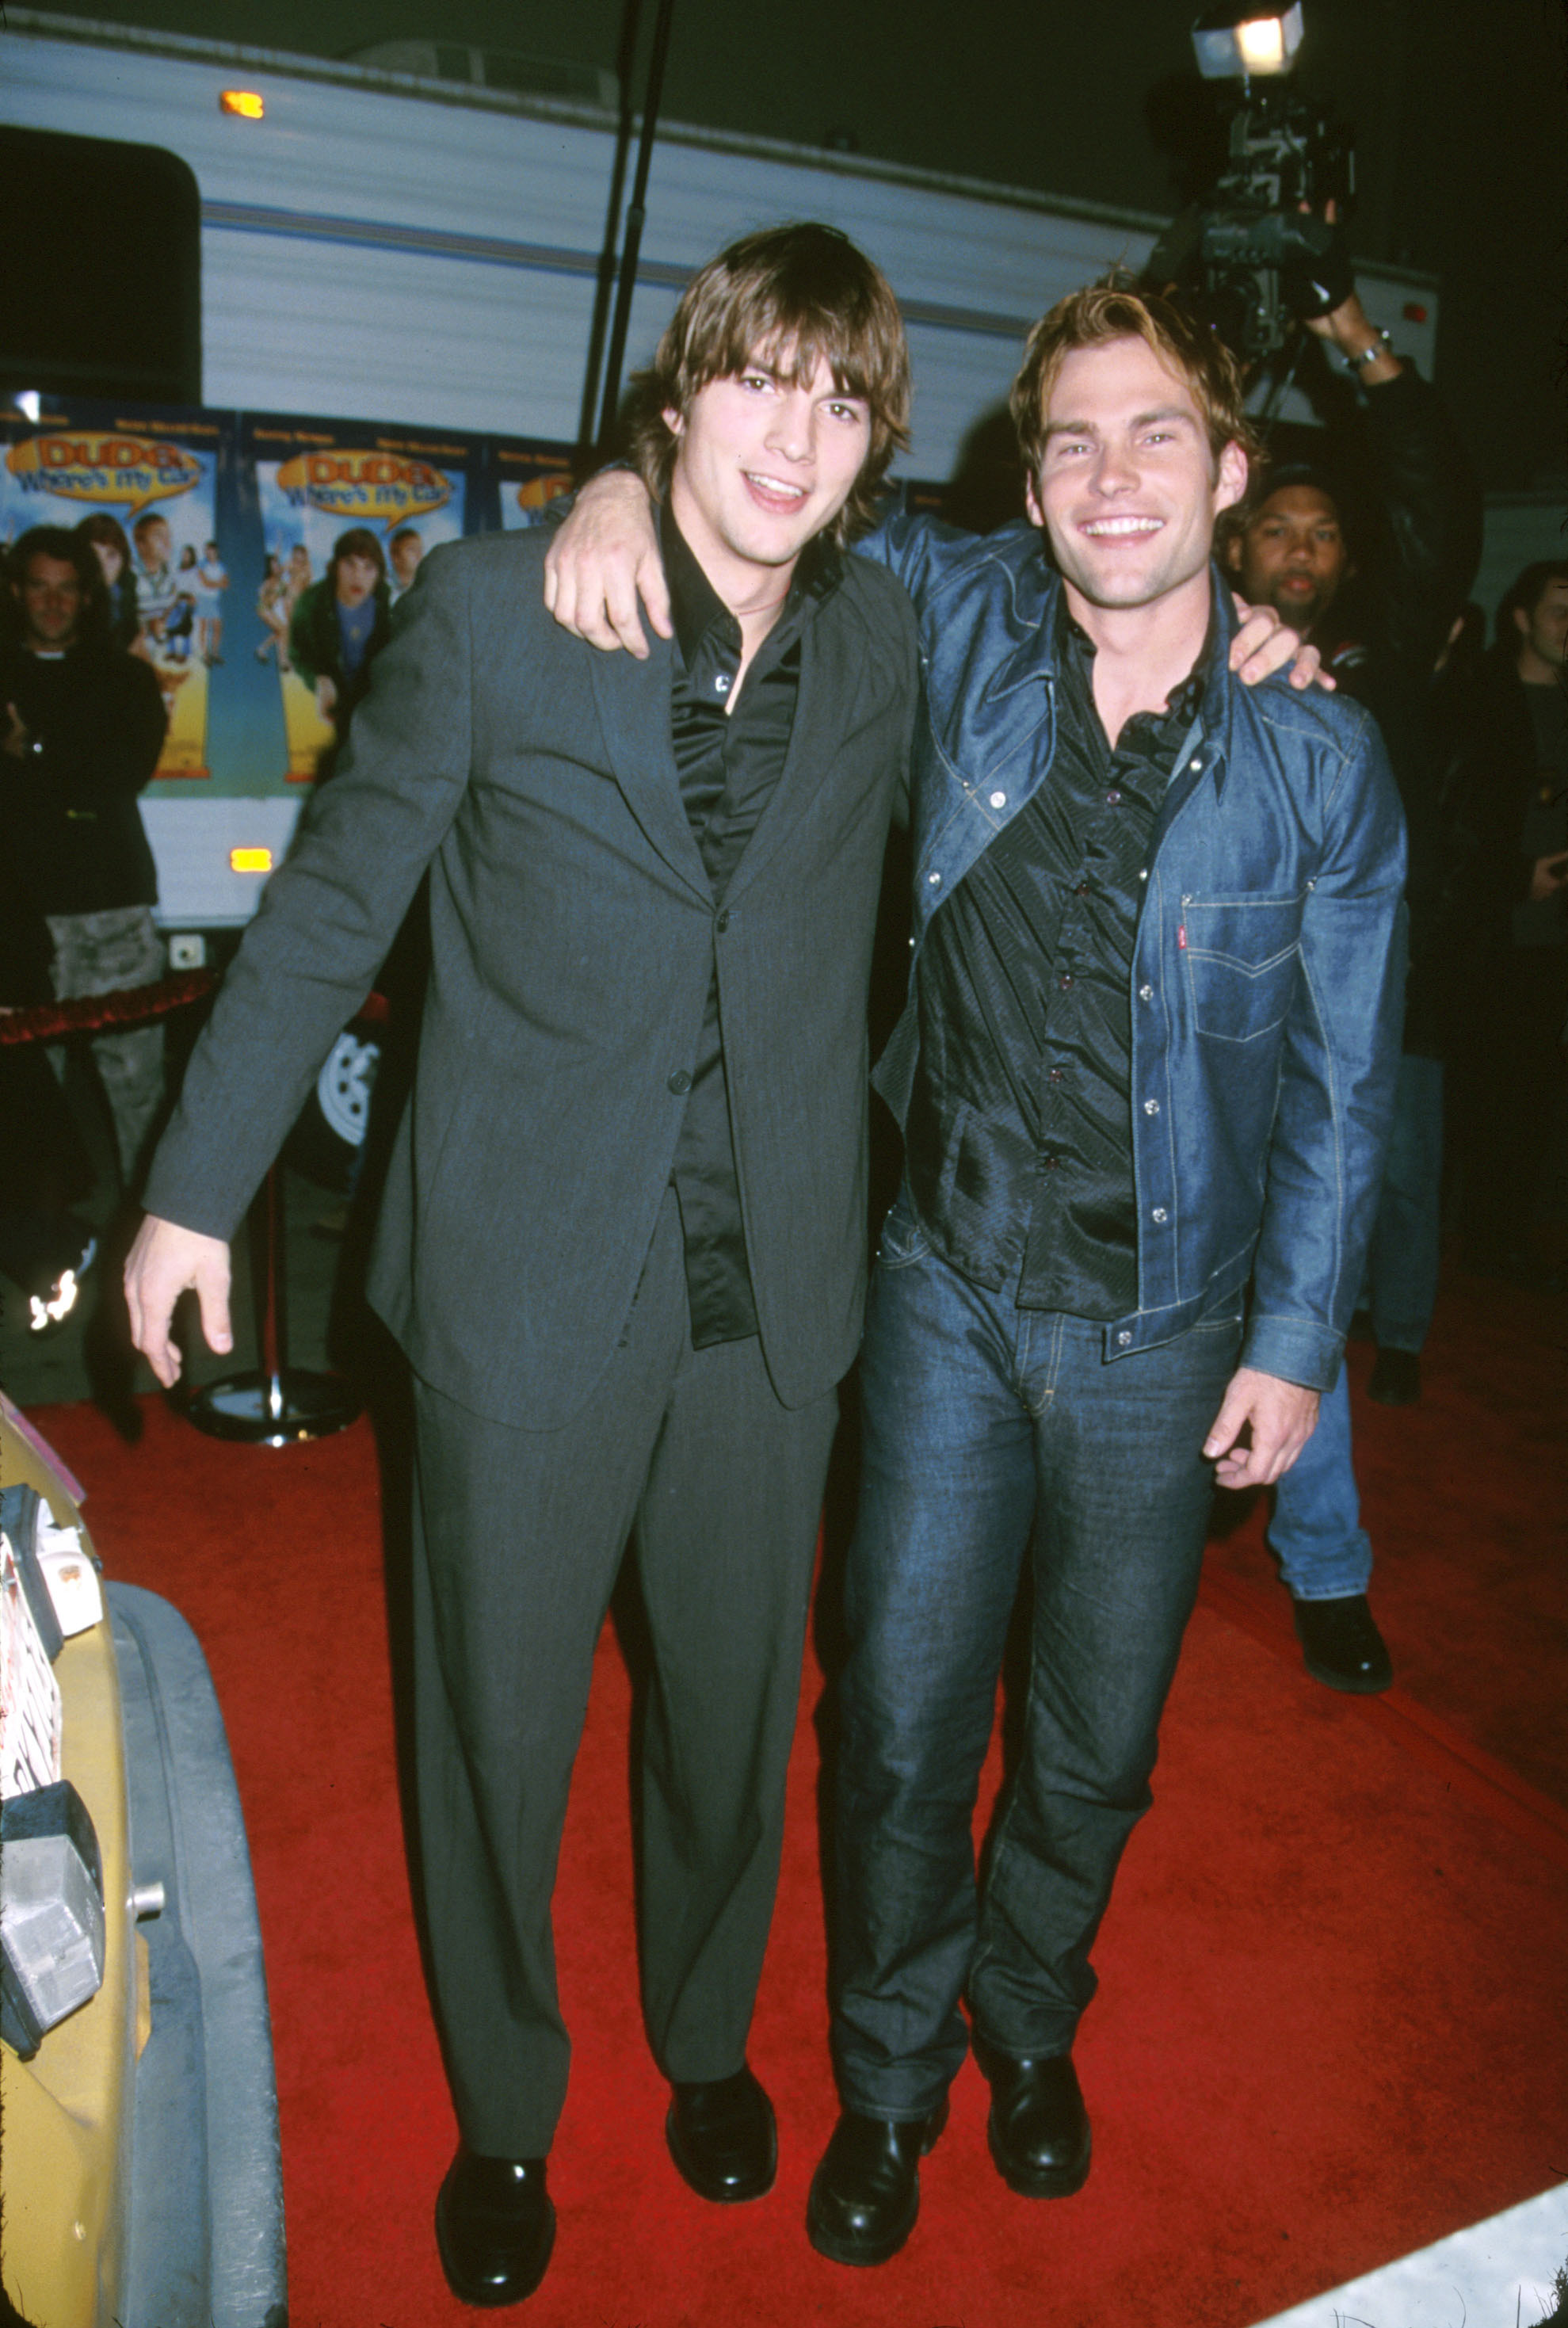 """Ashton Kutcher and Seann William Scott attend the premiere of """"Dude, Where's My Car?"""" at Fox Studios in Los Angeles on Dec. 10, 2000."""